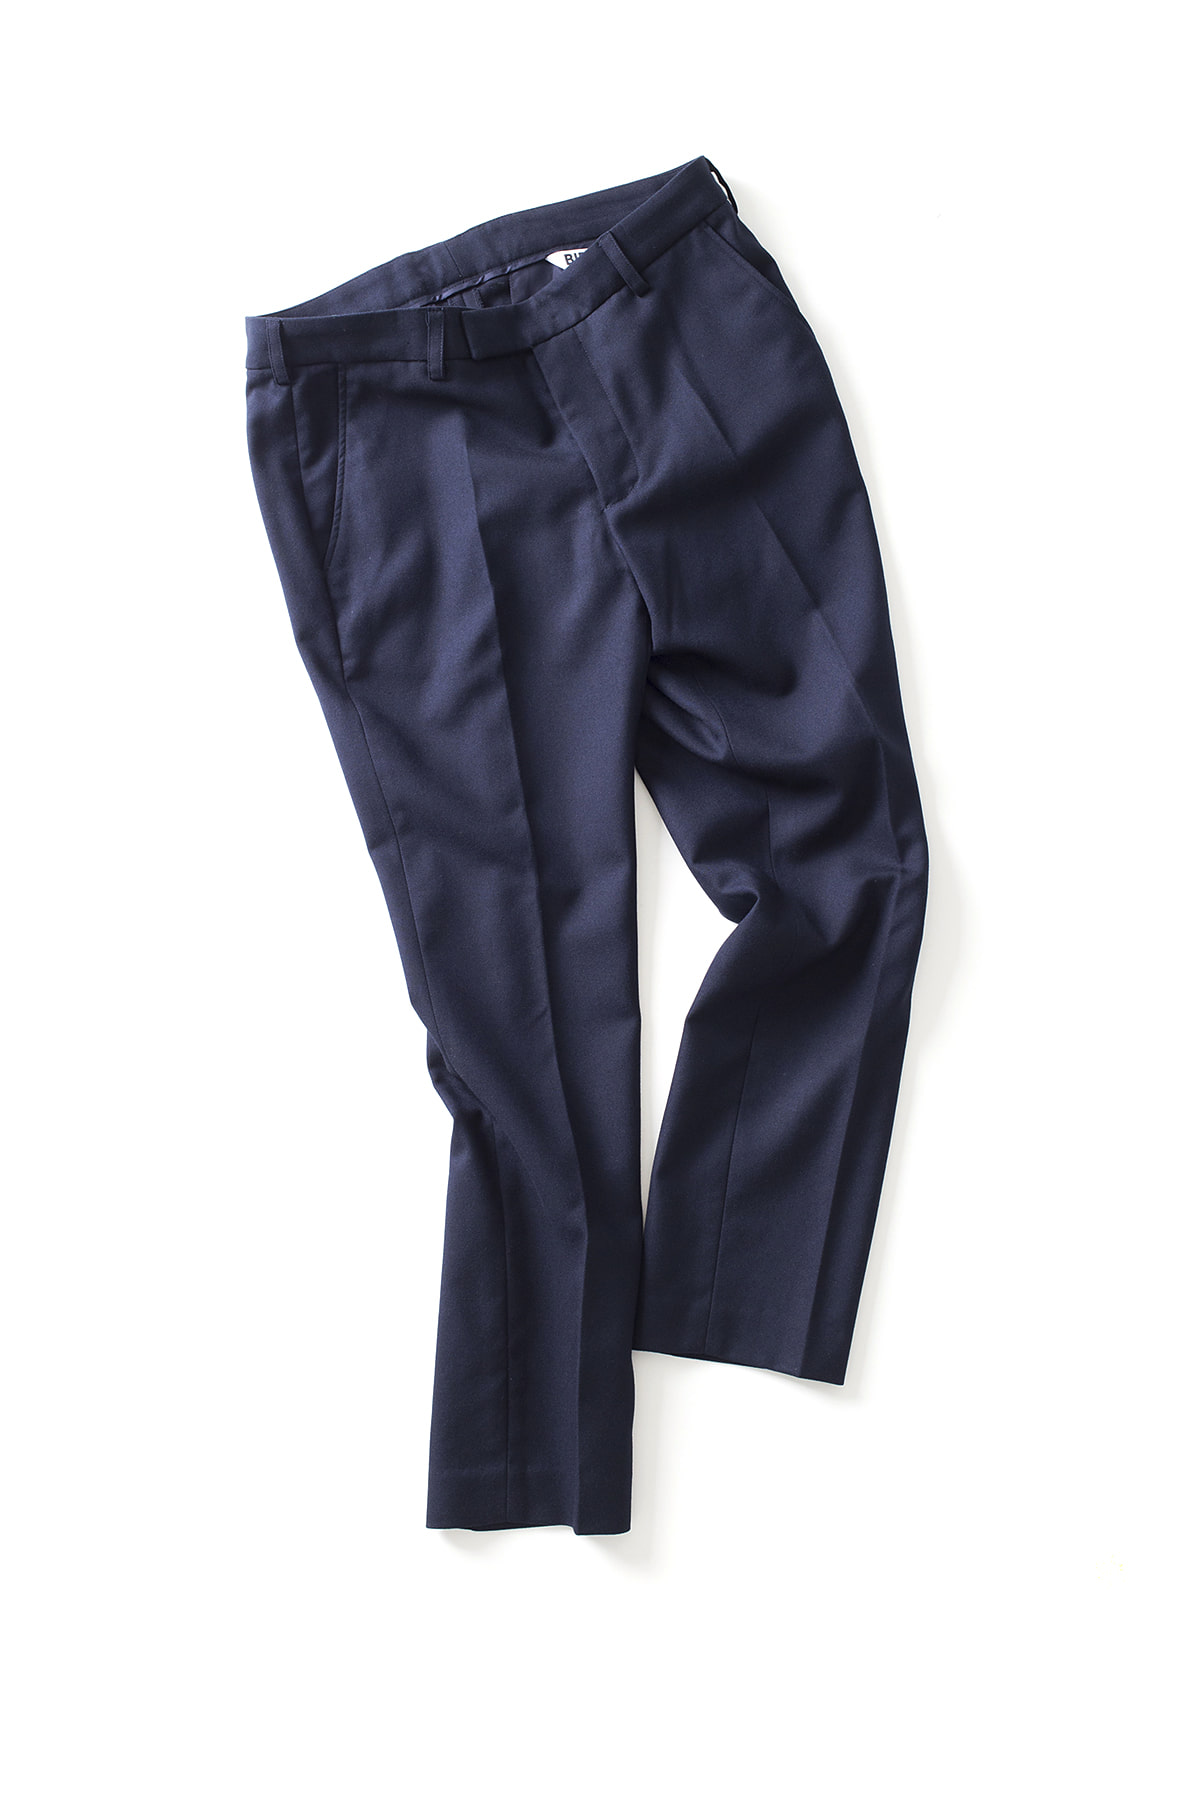 BIRTHDAYSUIT : Daily Suit Trouser (Navy)